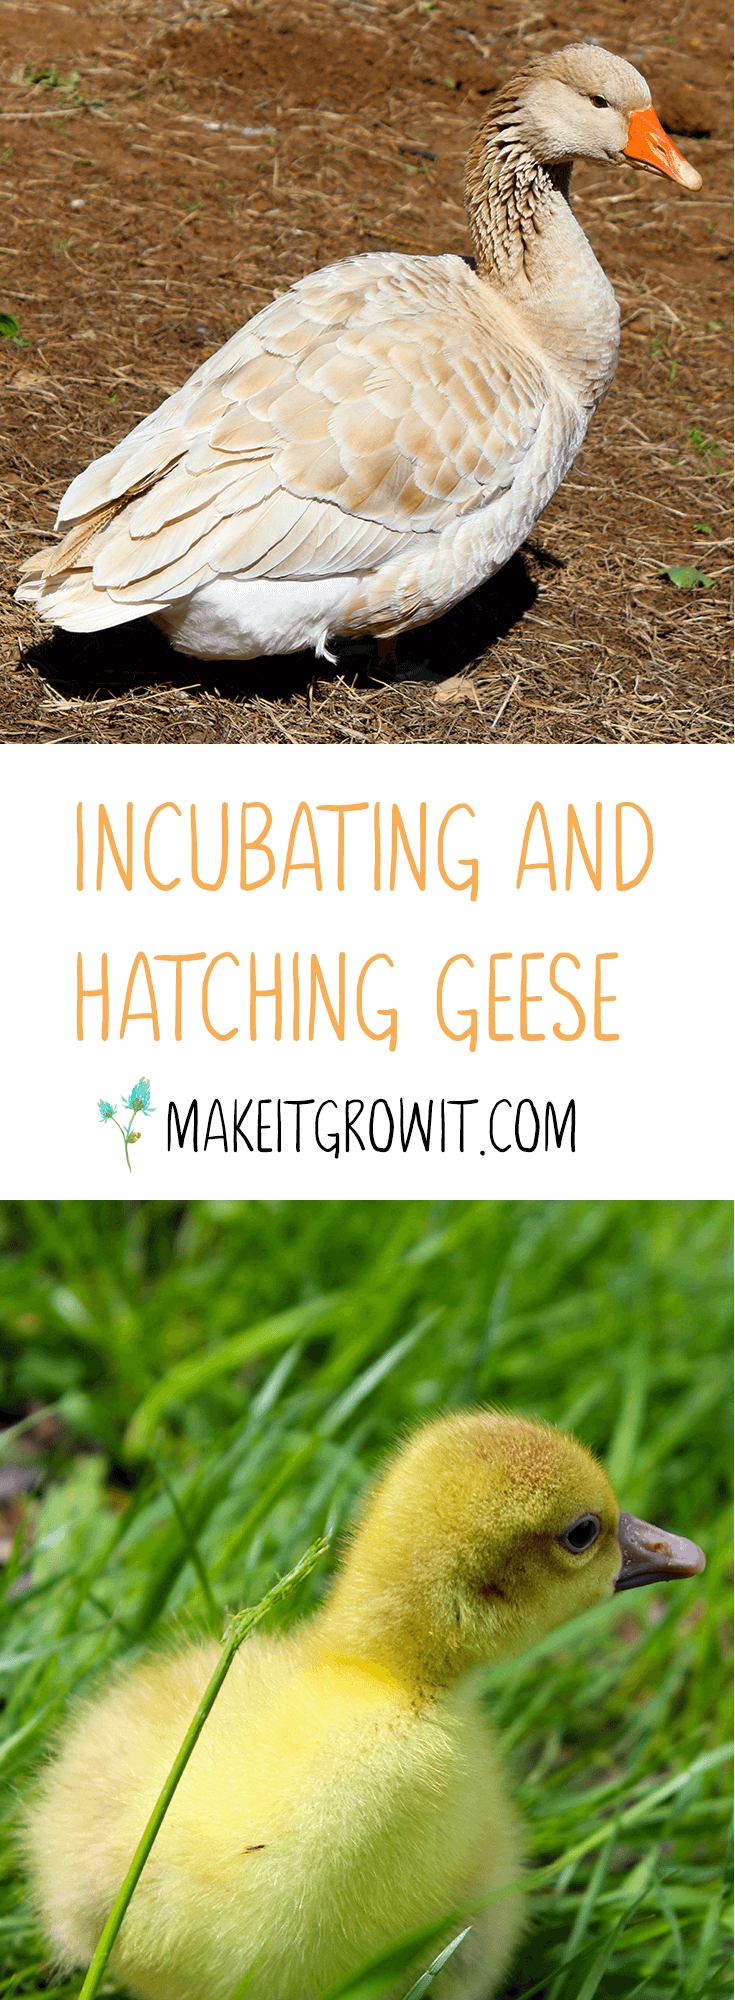 Guide to Hatching and Incubating Goose Eggs by Make It. Grow It. - Click to read now or Pin It to save for later.